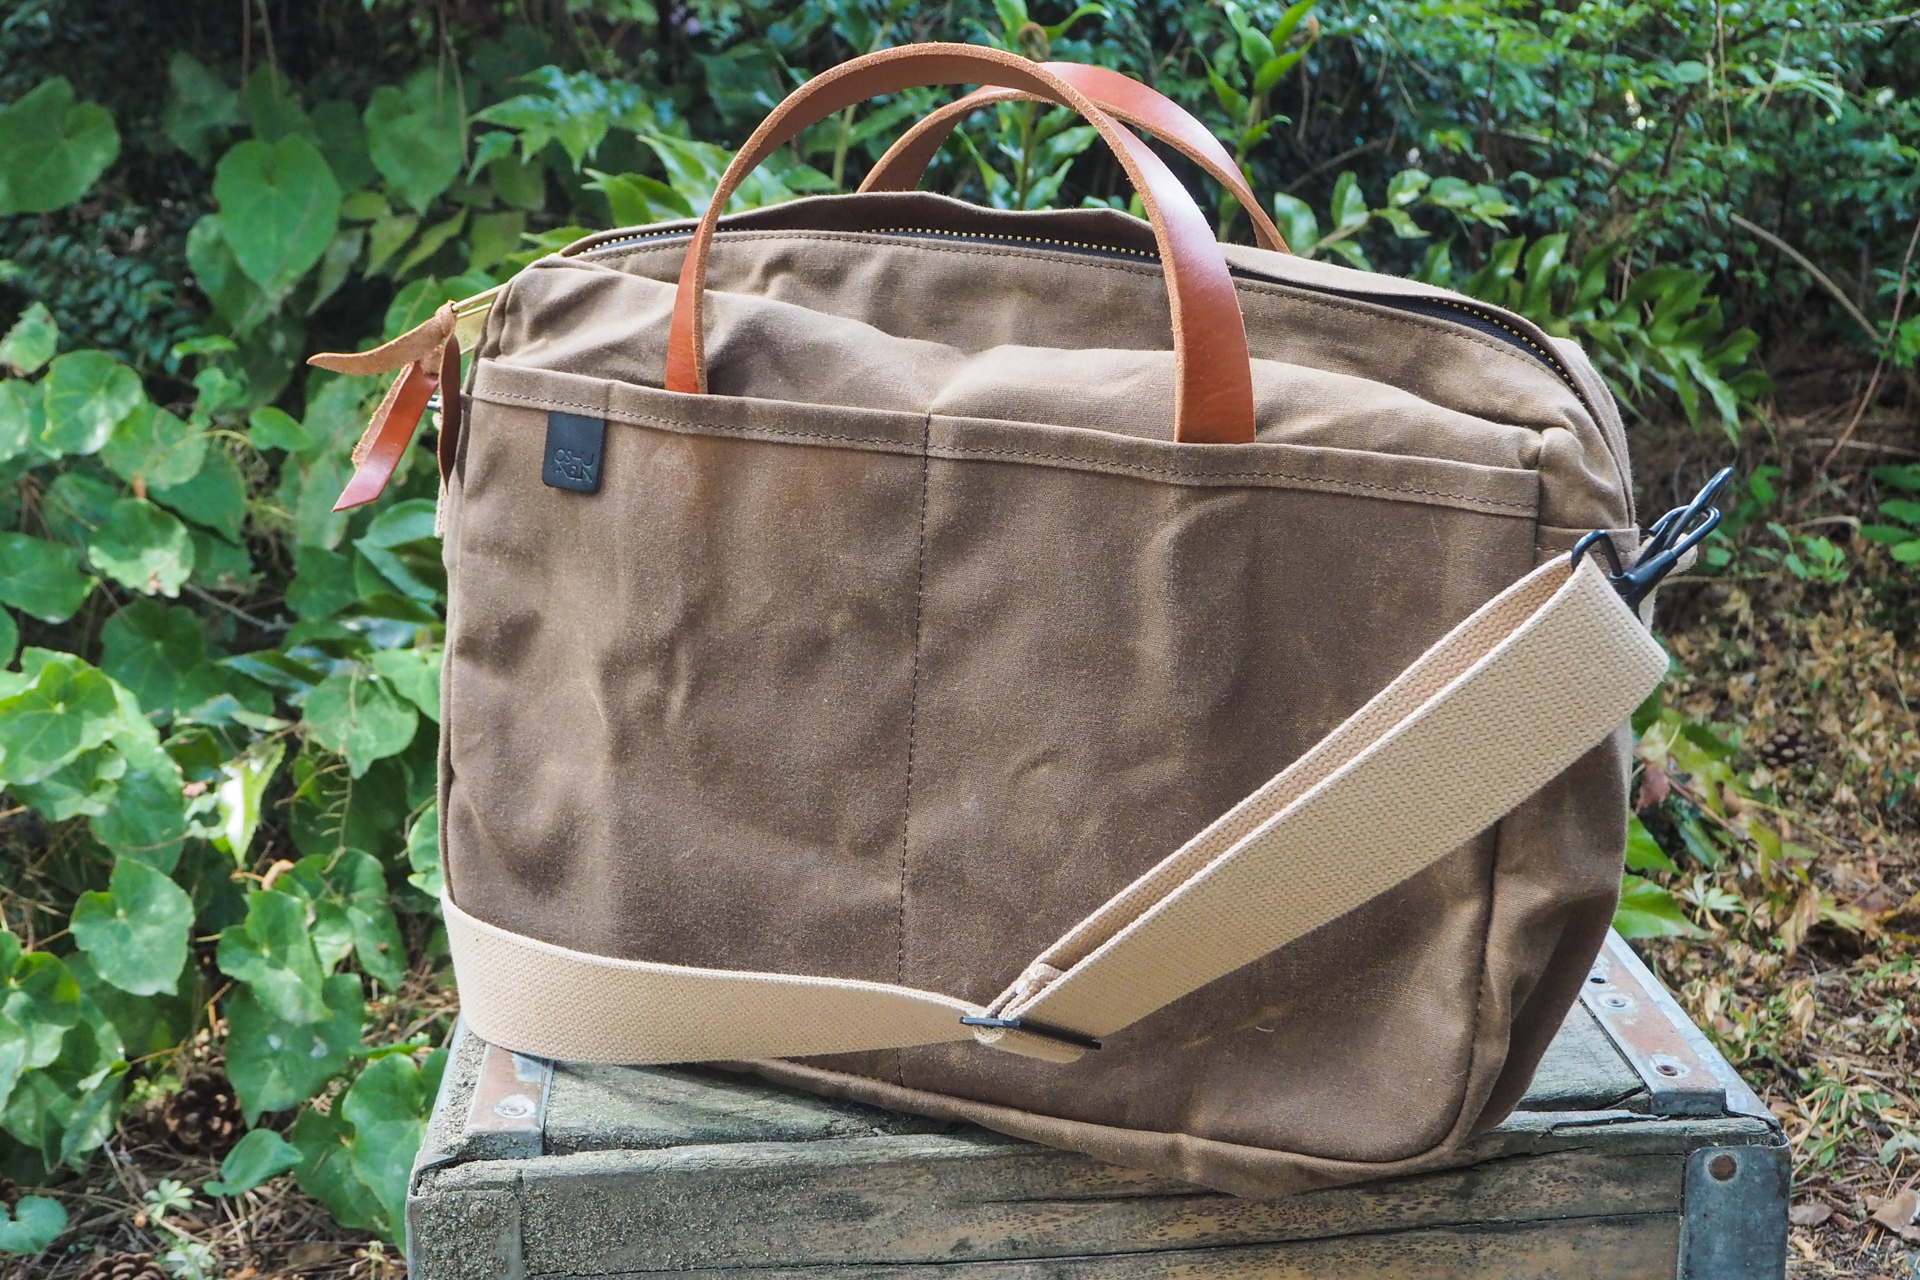 Waxed canvas bags from Waterfield, Manhattan Portage, Saddleback and more – TechCrunch 3